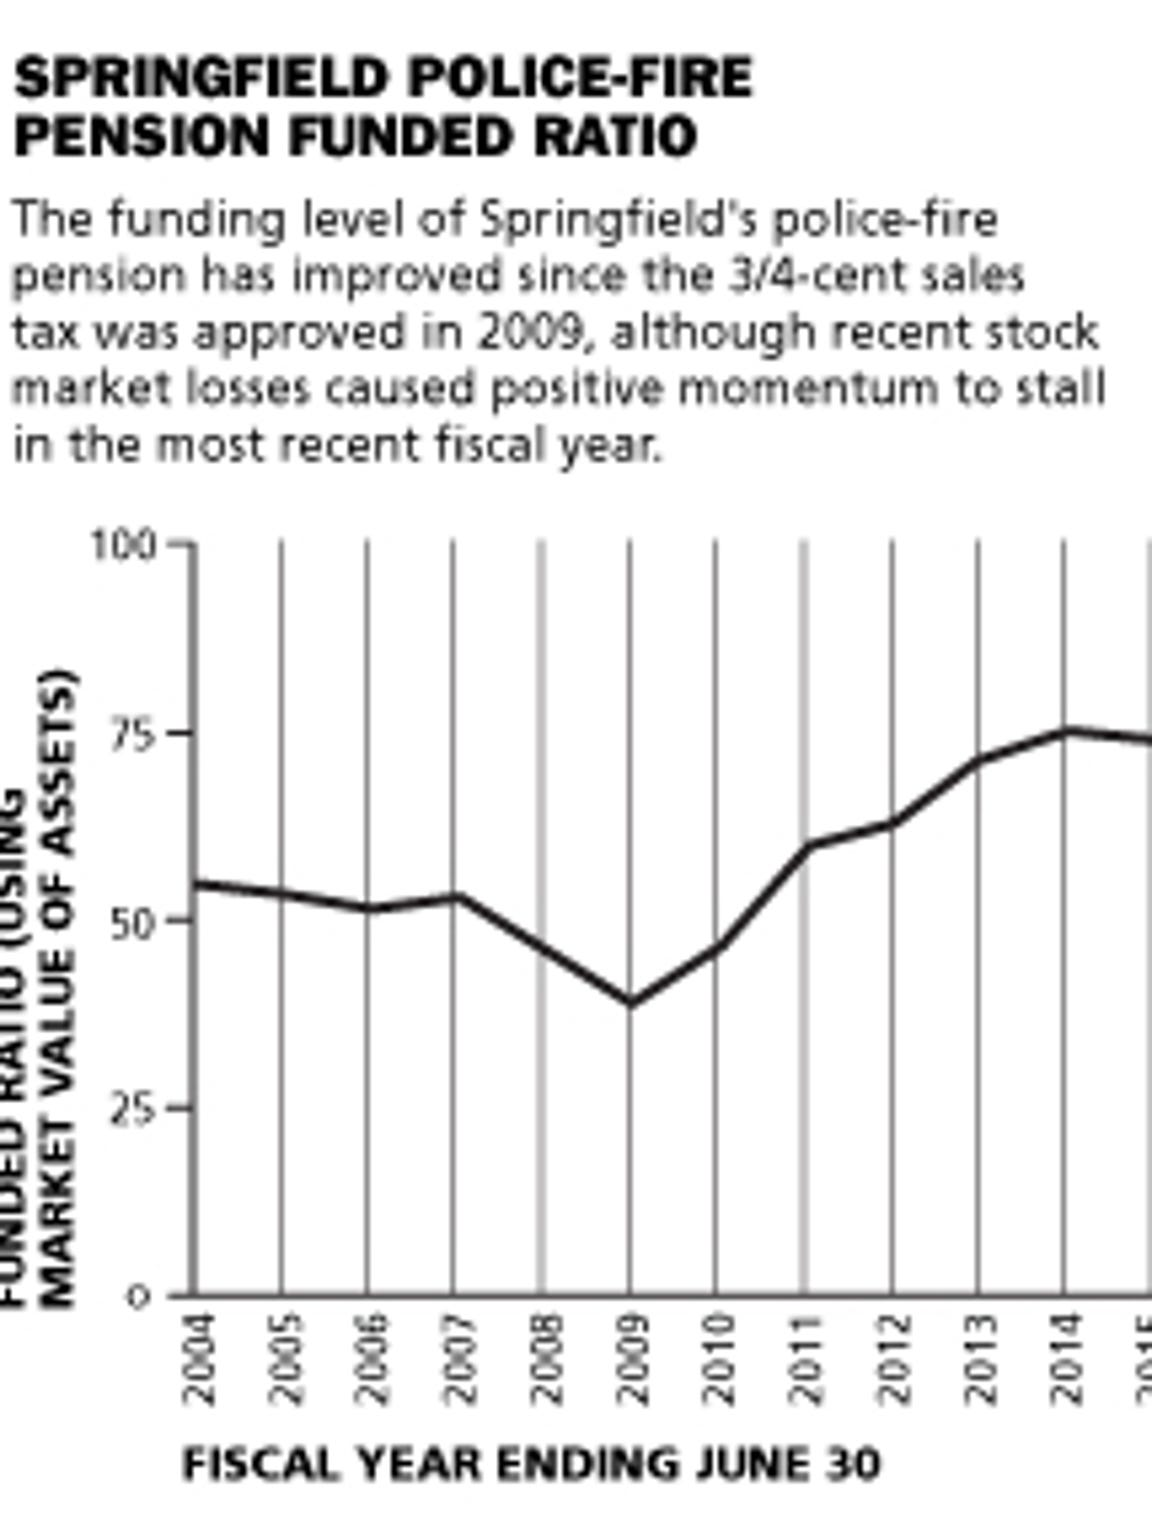 A graph showing the funded ratio of the Springfield